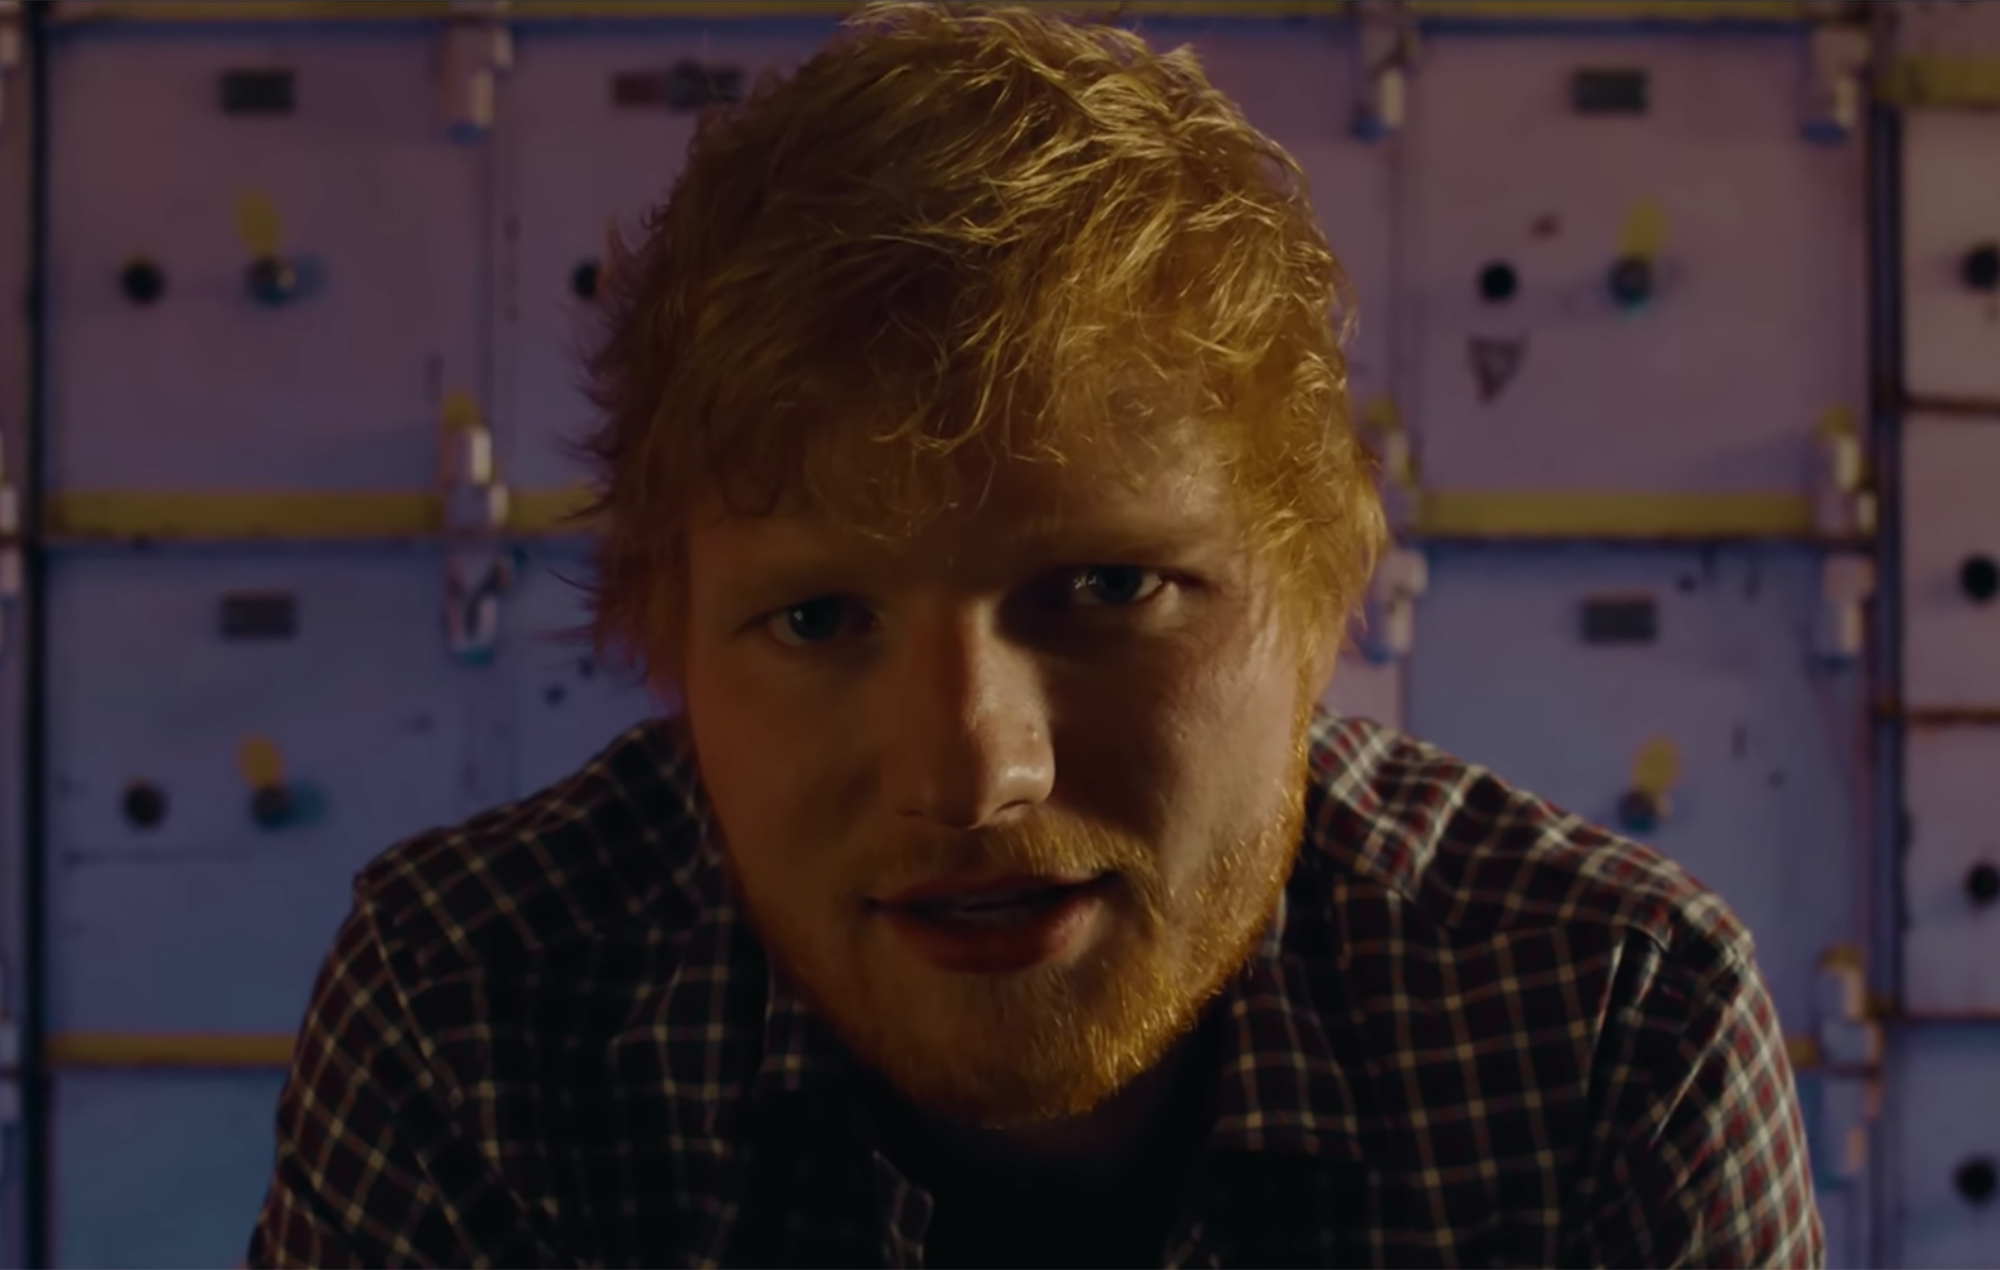 Ed Sheeran Nothing on You music video with Dave and Paulo Londra